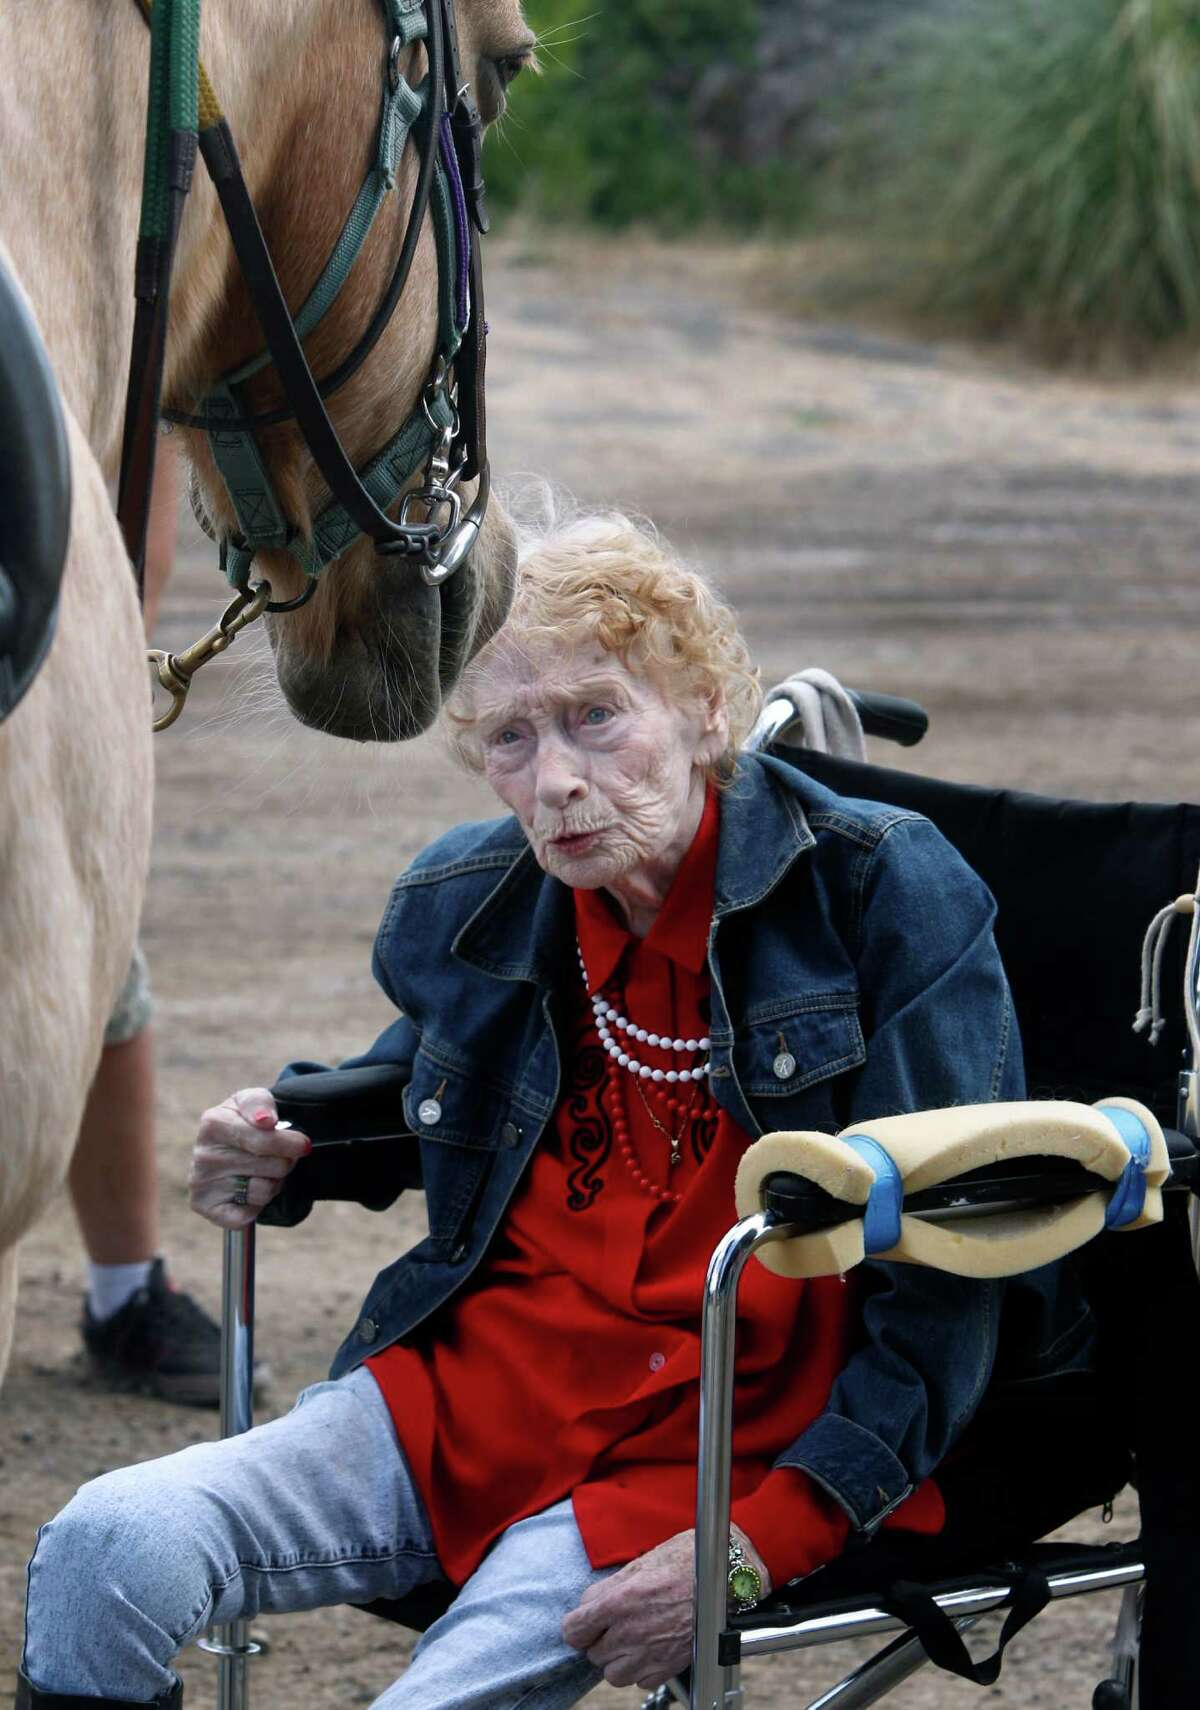 Ninety-year-old Thea Murphy, who uses a wheelchair, meets Katydid before riding the palomino.